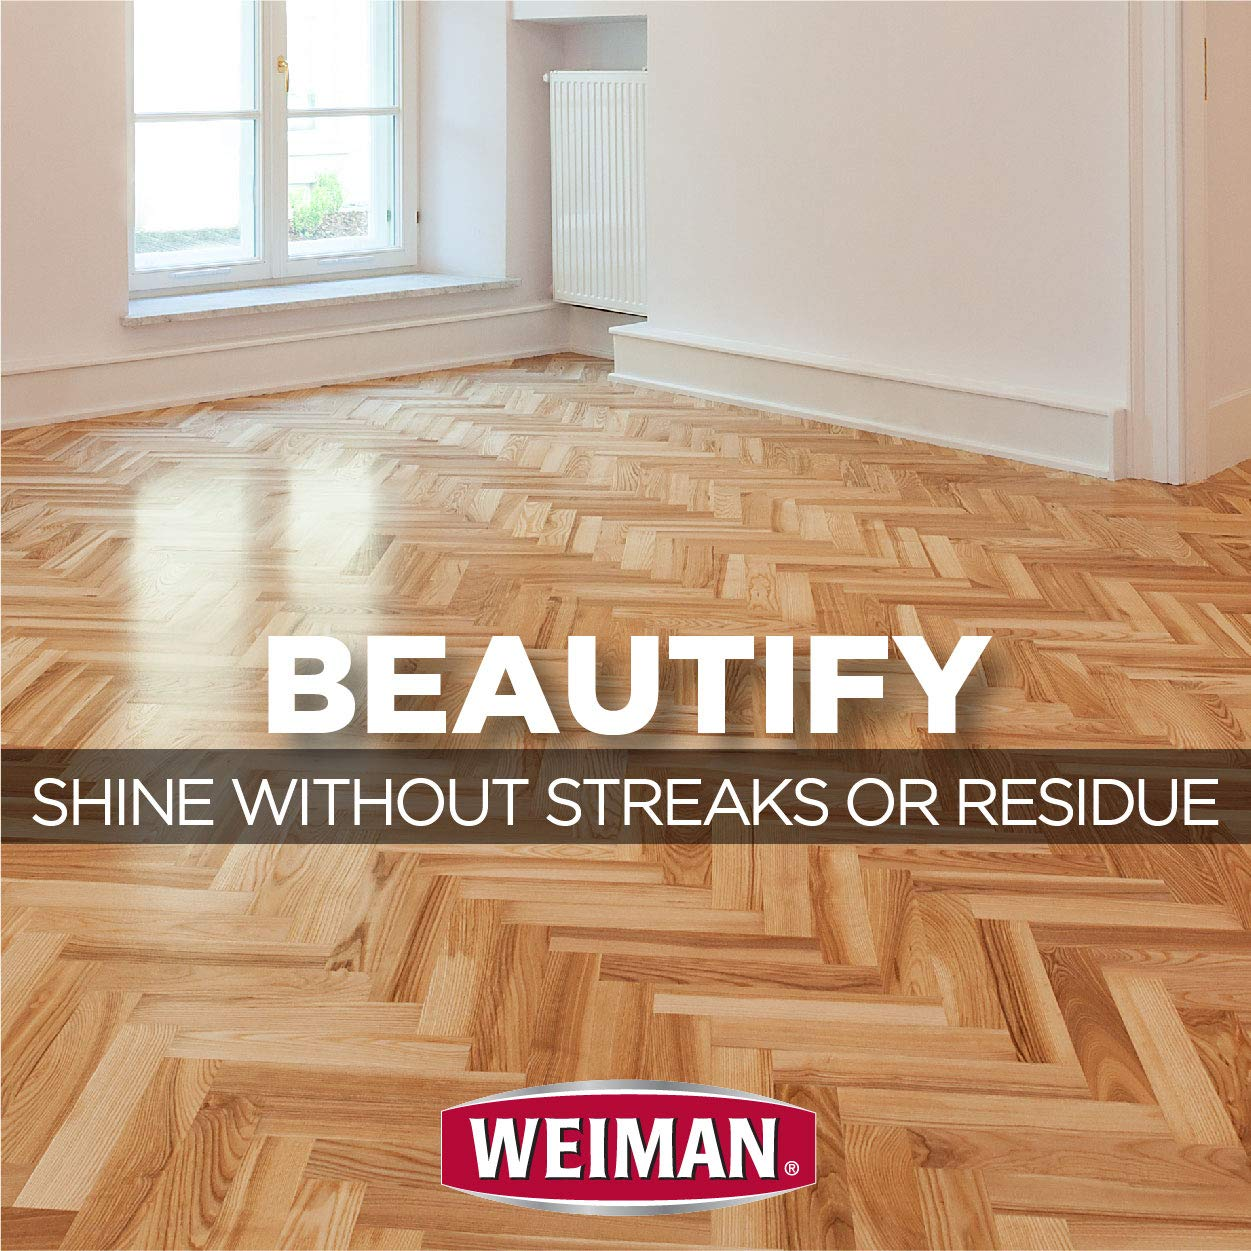 Weiman Wood Floor Cleaner [2 Pack] 32 Ounce - Hardwood Finished Oak Maple Cherry Birch Engineered and More - Professional Safe Steak-less by Weiman (Image #6)